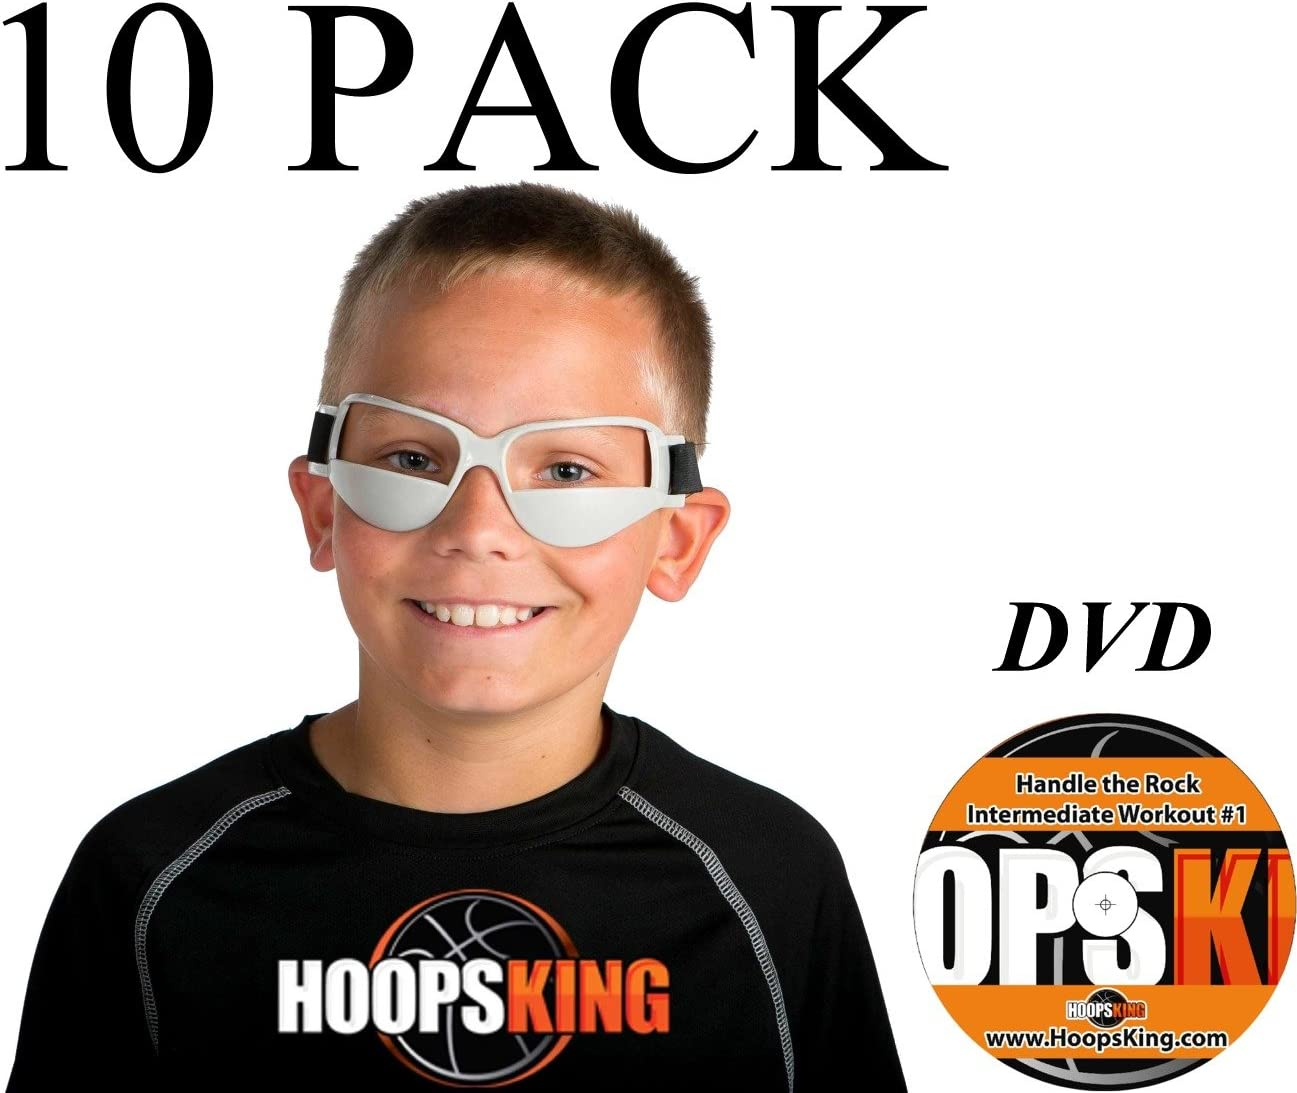 Amazon.com : HoopsKing Basketball Dribble Goggles 10 Pack Plus Workout DVD : Sports & Outdoors